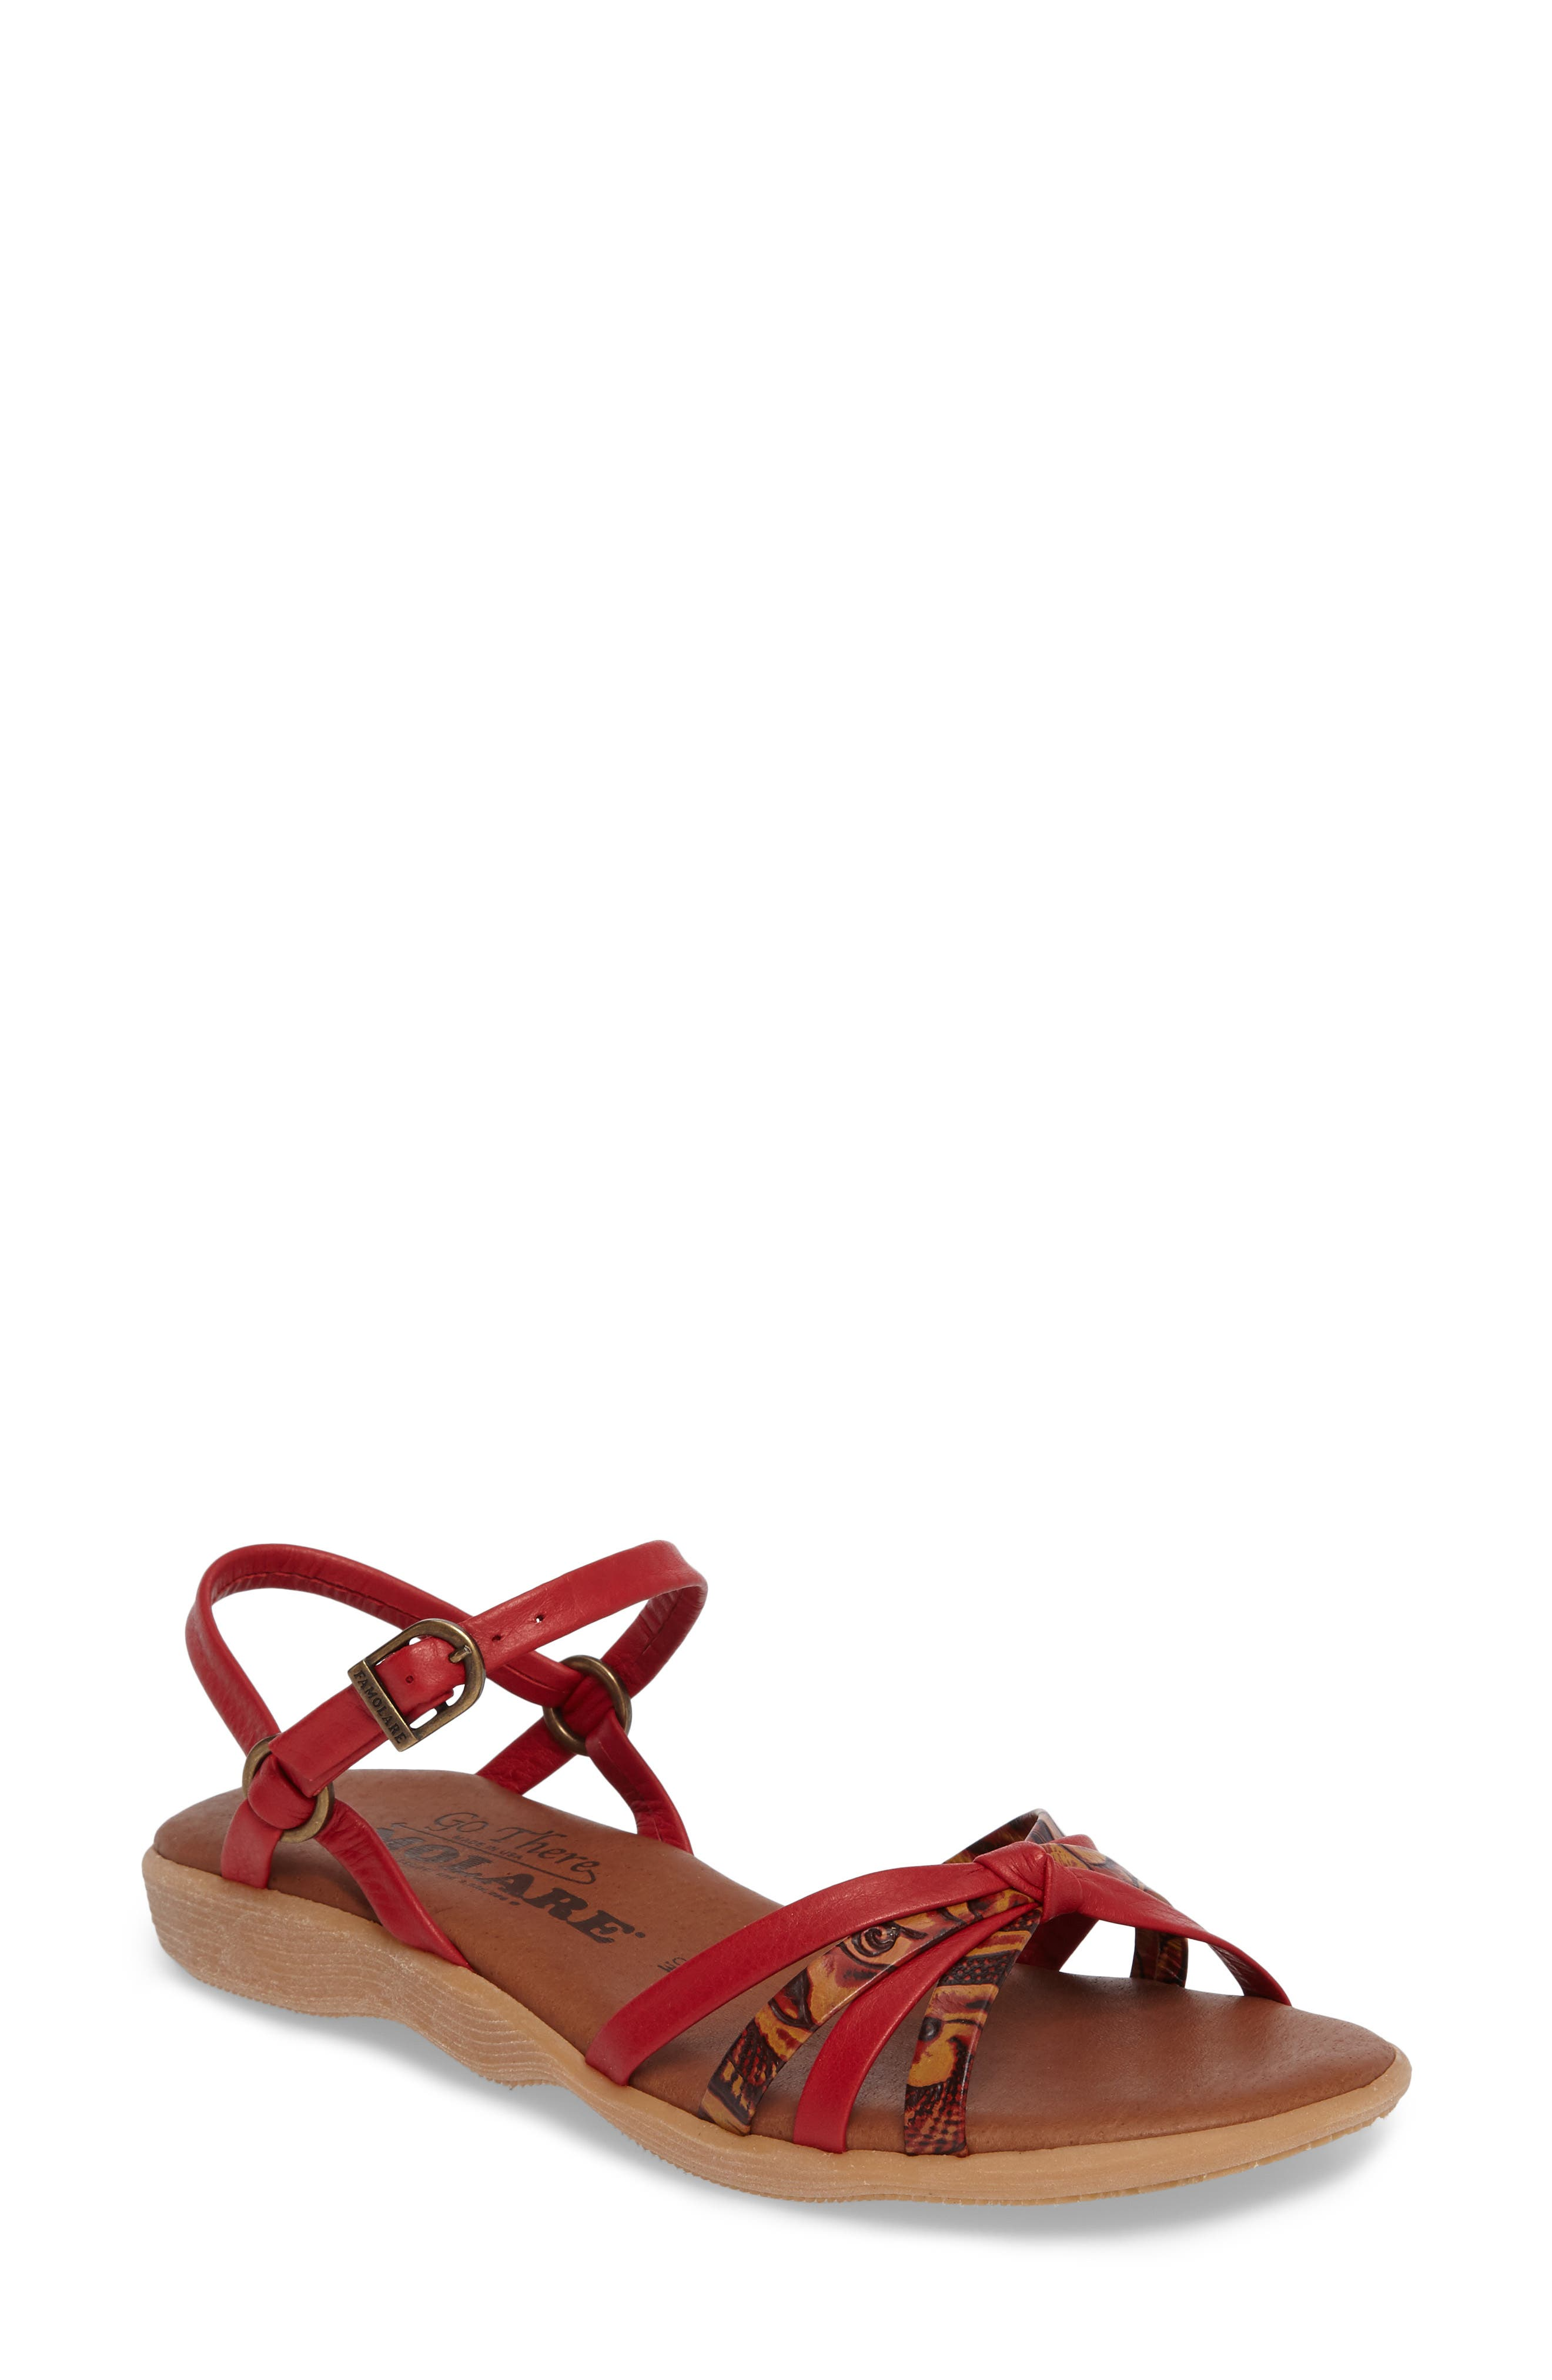 Strap Music Knotted Sandal,                         Main,                         color, MULTI CORAL LEATHER